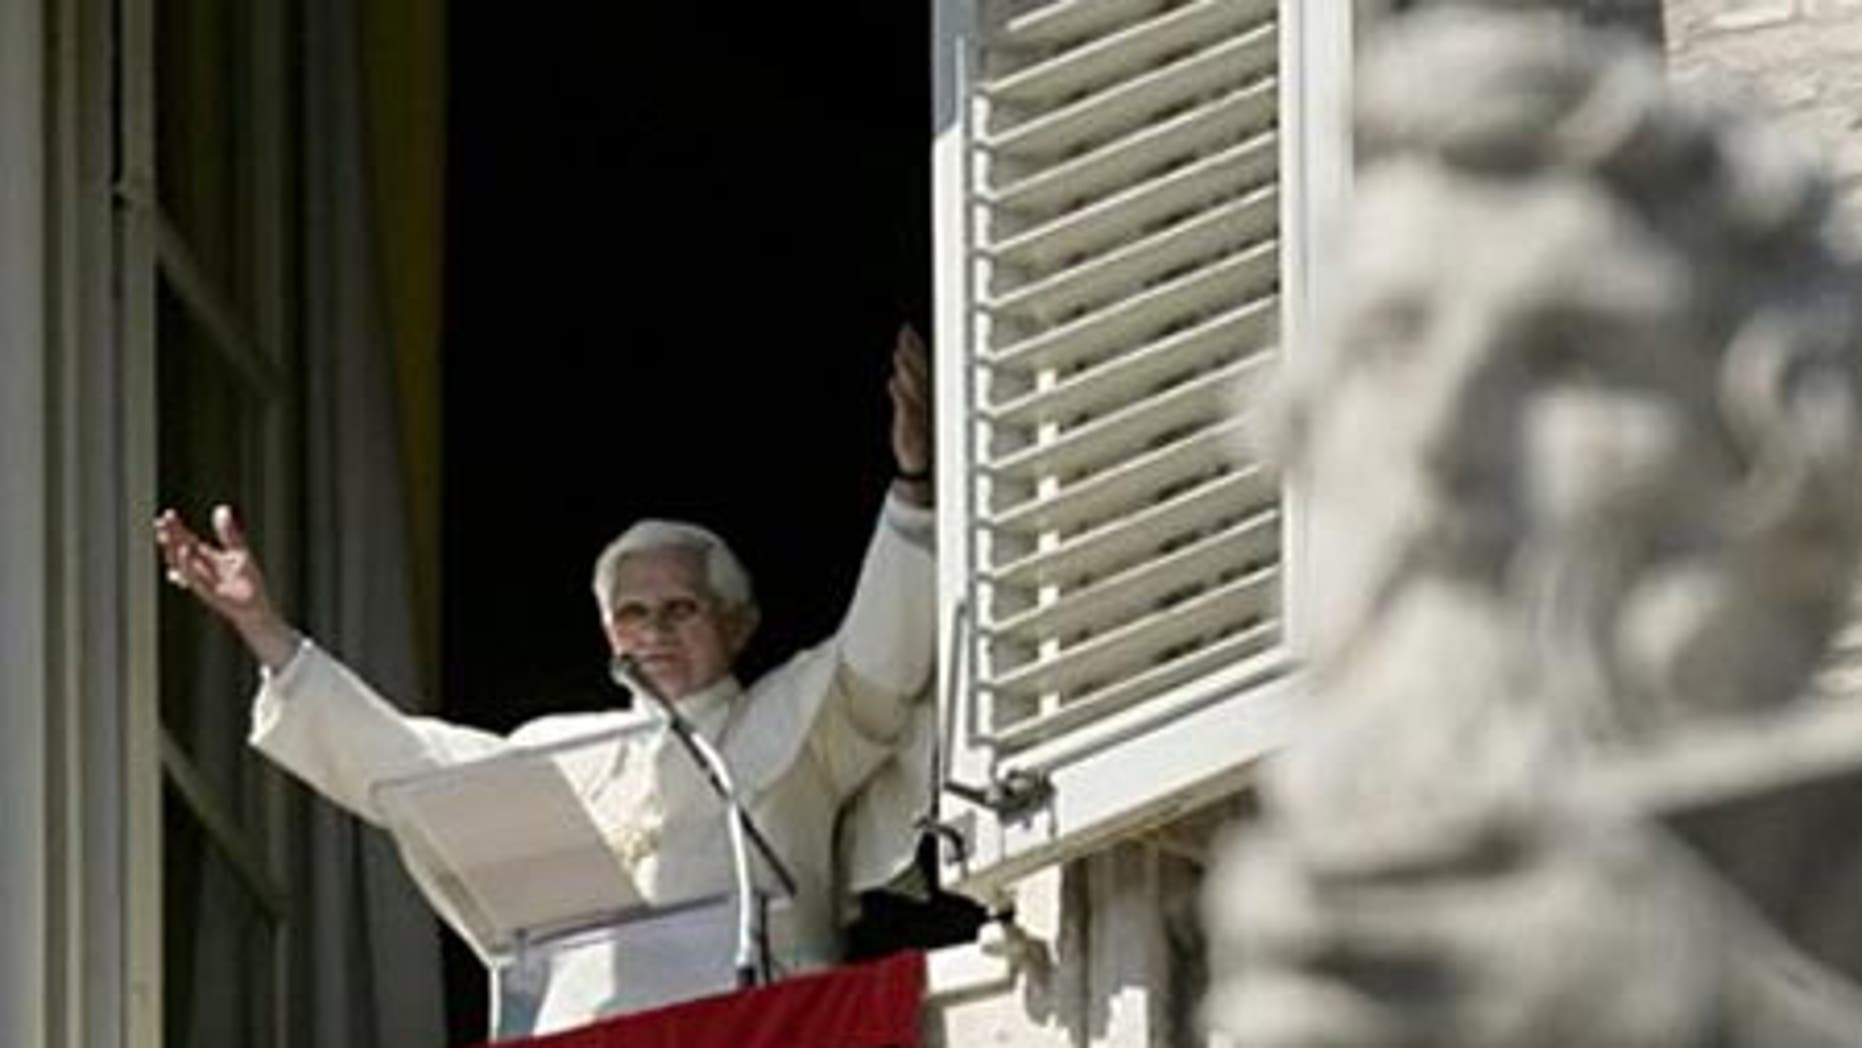 March 8: Pope Benedict XVI greets the faithful during the Angelus noon prayer in St. Peter's Square at the Vatican.